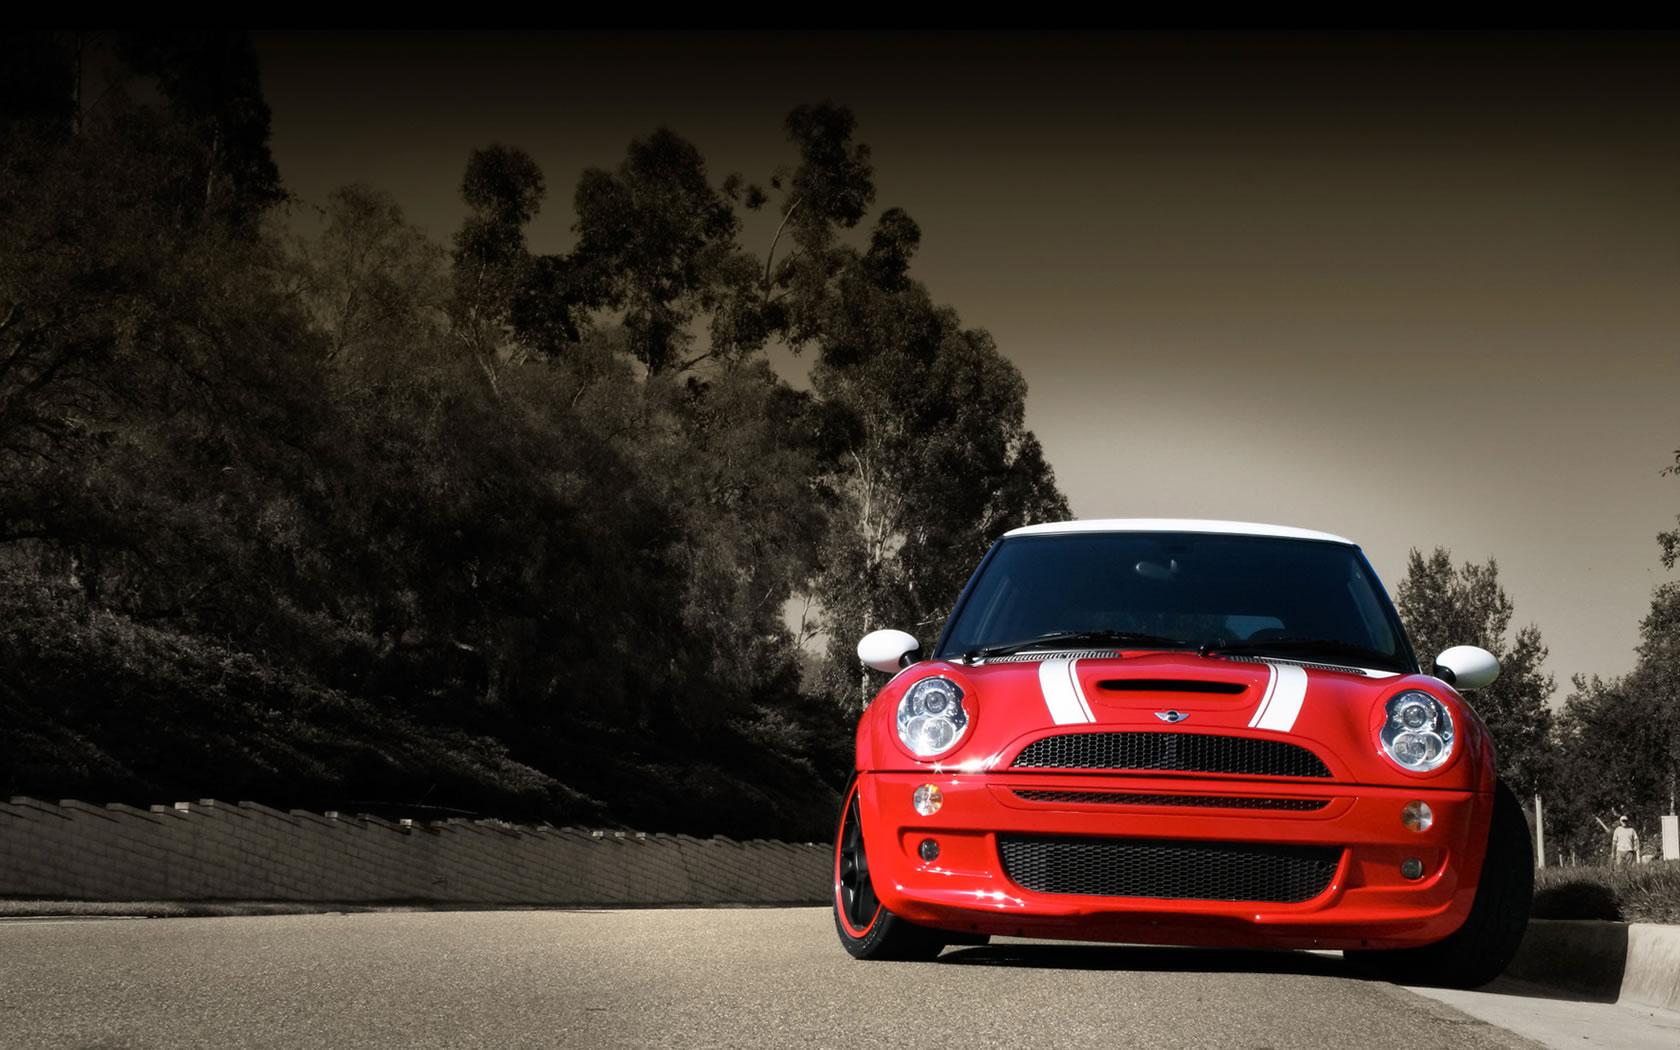 Race Red Mini Cooper Wallpapers Race Re 1680x1050